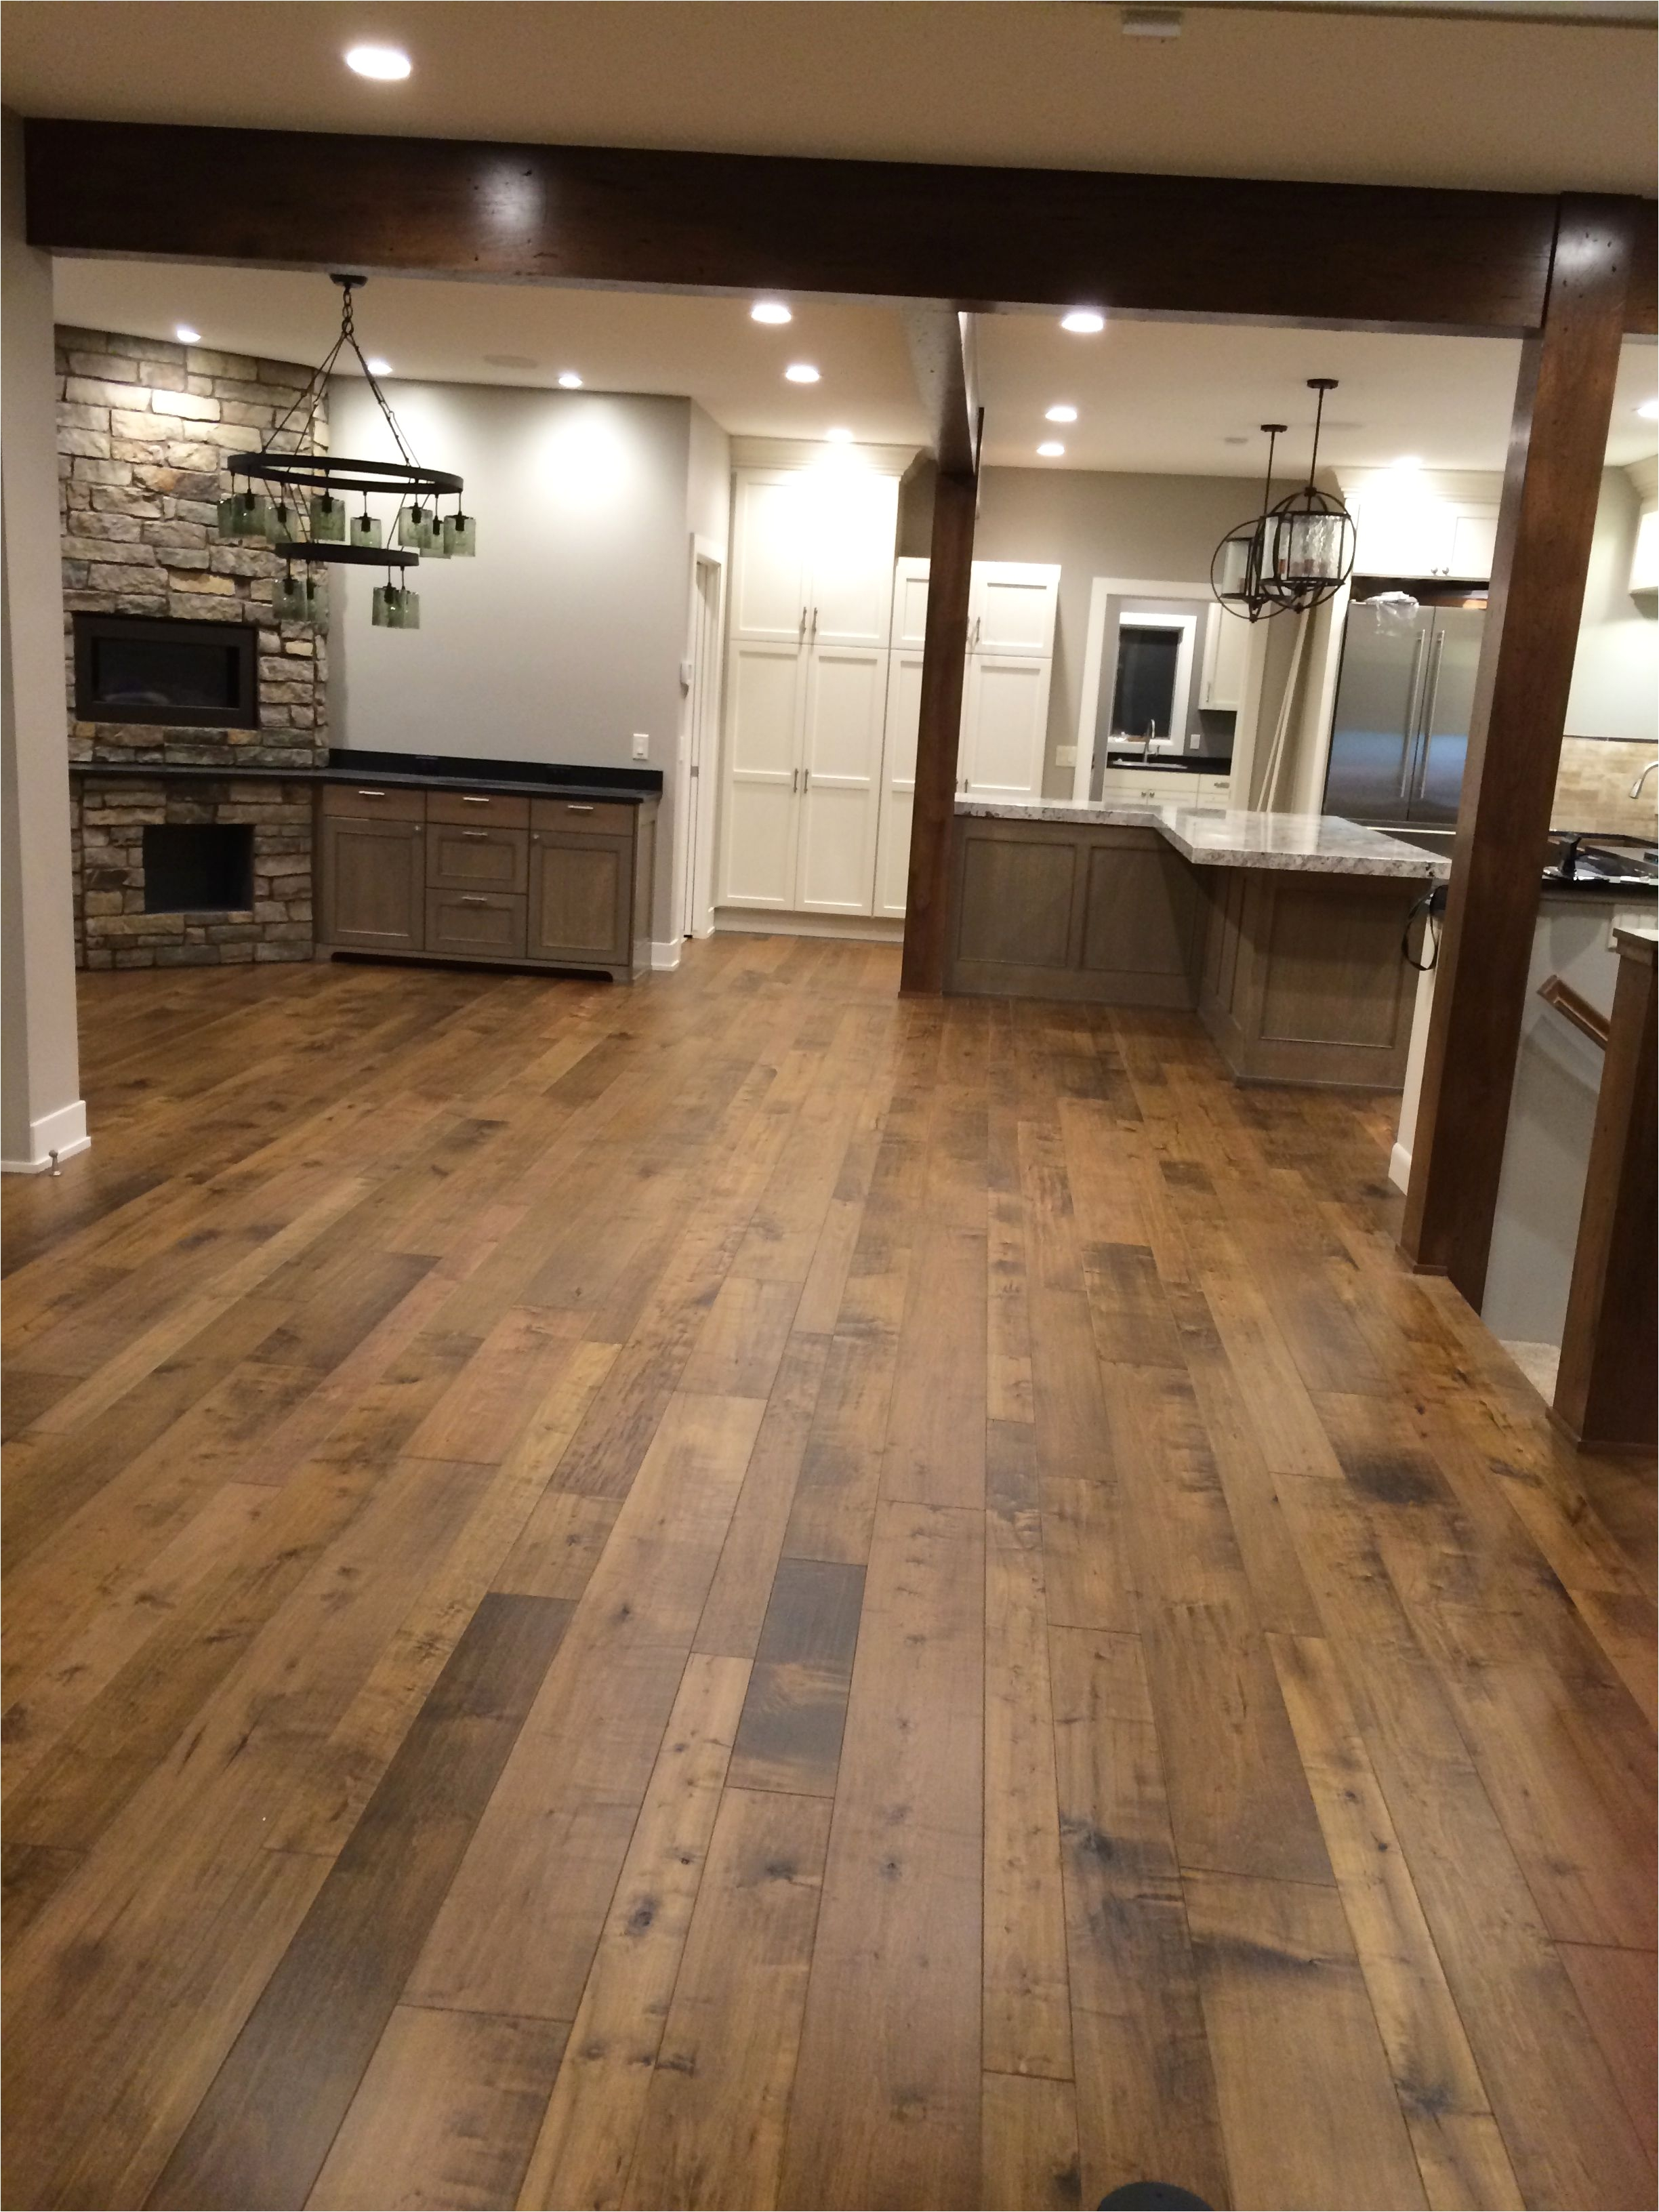 the floors were purchased from carpets direct and installed by fulton construction engineered hardwood flooring collection